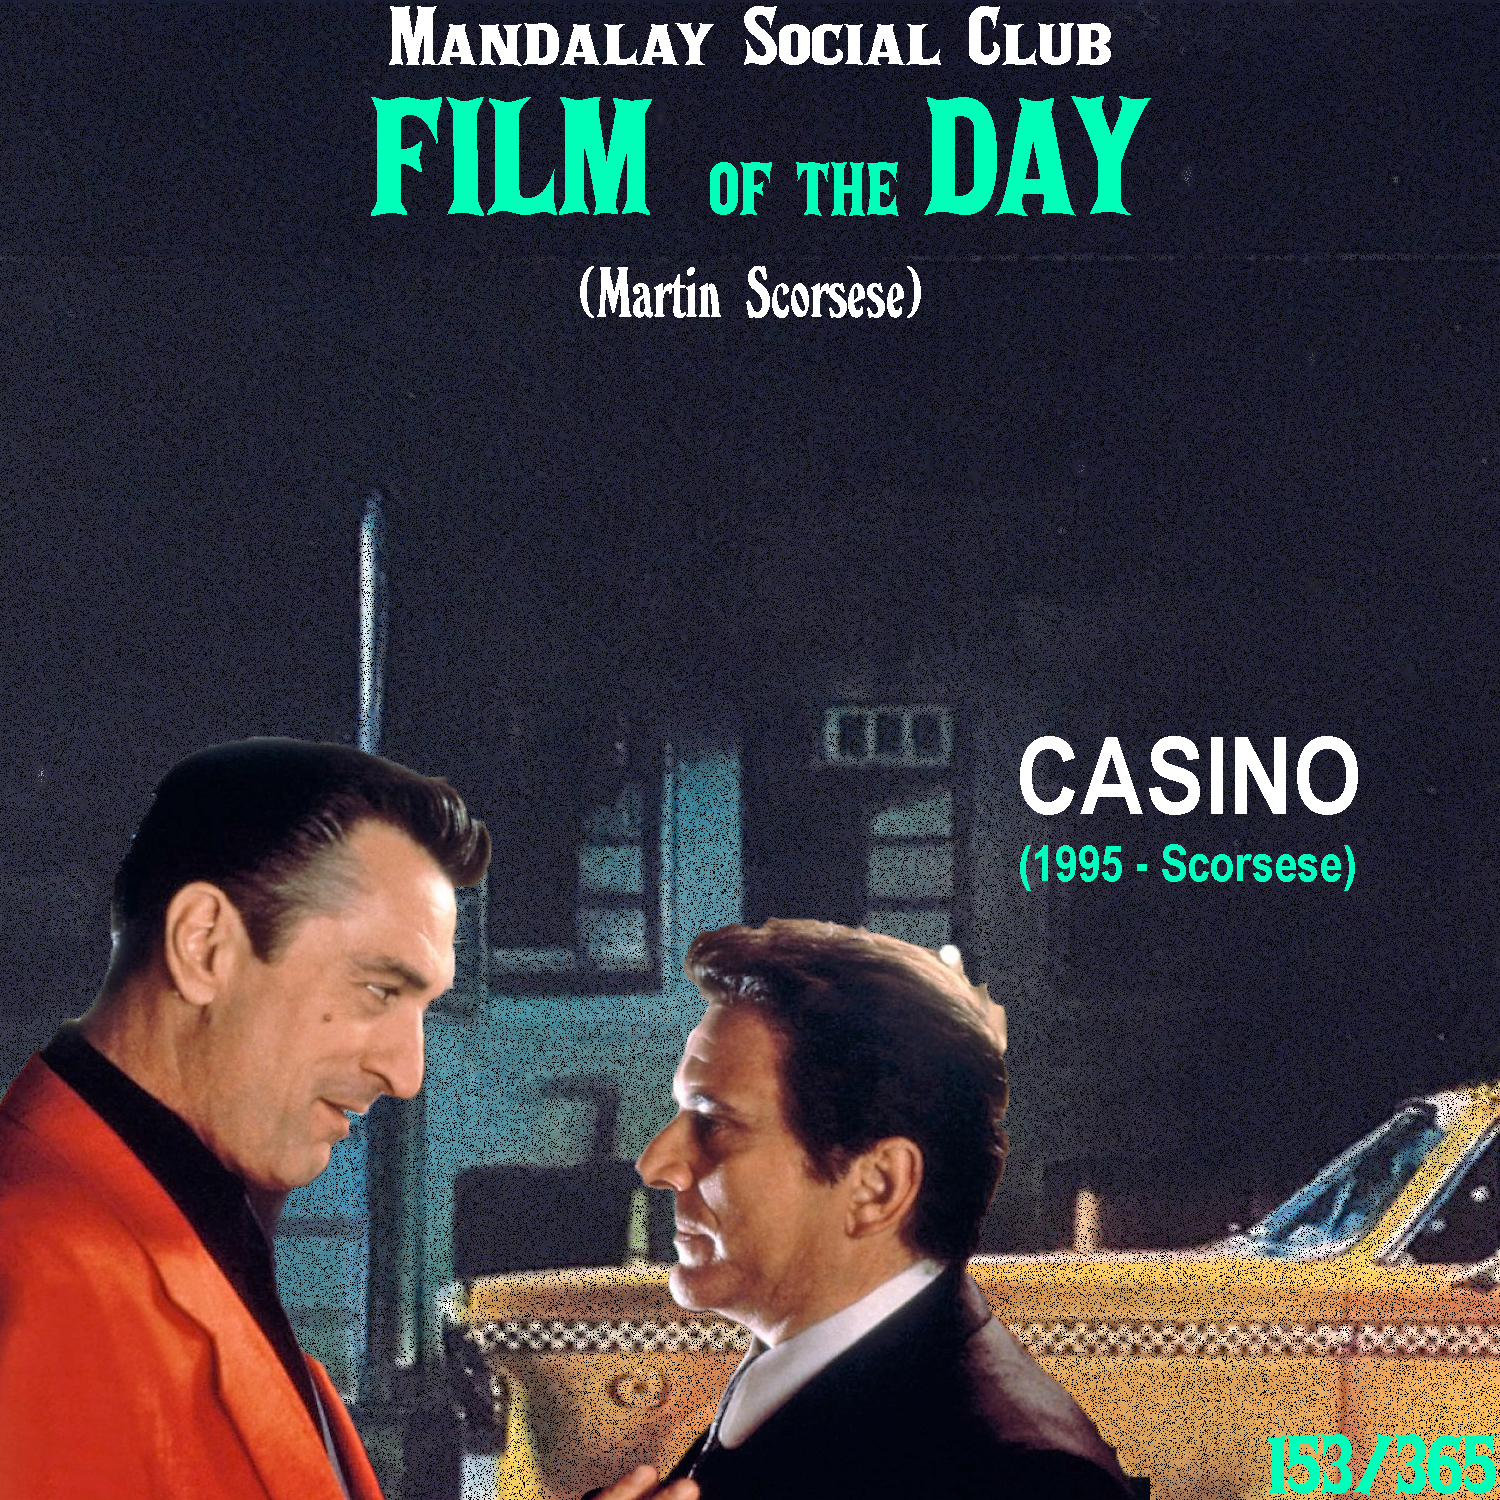 CASINO     (dir. Martin Scorsese)   5 years after  Goodfellas , Scorsese teamed back up with a lot of the same crew to make  Casino : his film about the Las Vegas mobsters.  Robert DeNiro stars as Ace Rothstein, a former gangster who now runs the most prominent casino in Vegas, the Tangiers. It's out here in Vegas that Ace makes quite the name for himself, however his partner Nicky, played by Joe Pesci causes a lot of trouble for him due to his violent nature. Further, his former hustler of a wife complicates matters even worse when she can't leave her low-life ex-boyfriend in the past.   Casino  is based on a novel written by Nicholas Pileggi, who also wrote the novel  Goodfellas  was based off of. DeNiro and Scorsese marked their 8th collaboration with this film and it was their last collaboration together before  The Irishman  which is due out this year! -  Casino  shows DeNiro at perhaps his most sympathetic under Scorsese, as a man who is whole-heartedly dependent and desperate for mutual trust.    4/5     WATCH: iTunes (RENT), Putlocker (FREE)